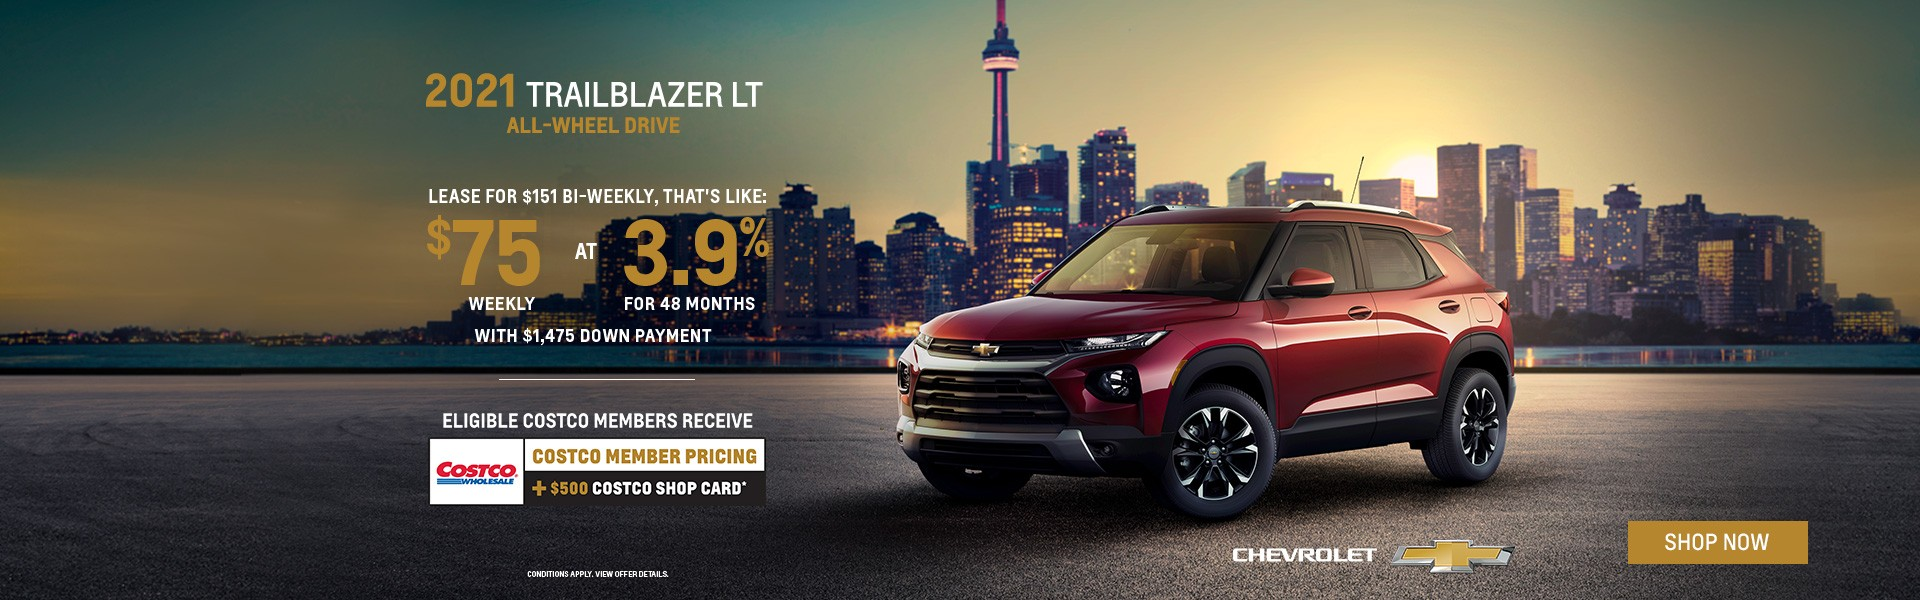 2021 Chevrolet Trailblazer Specials Brampton